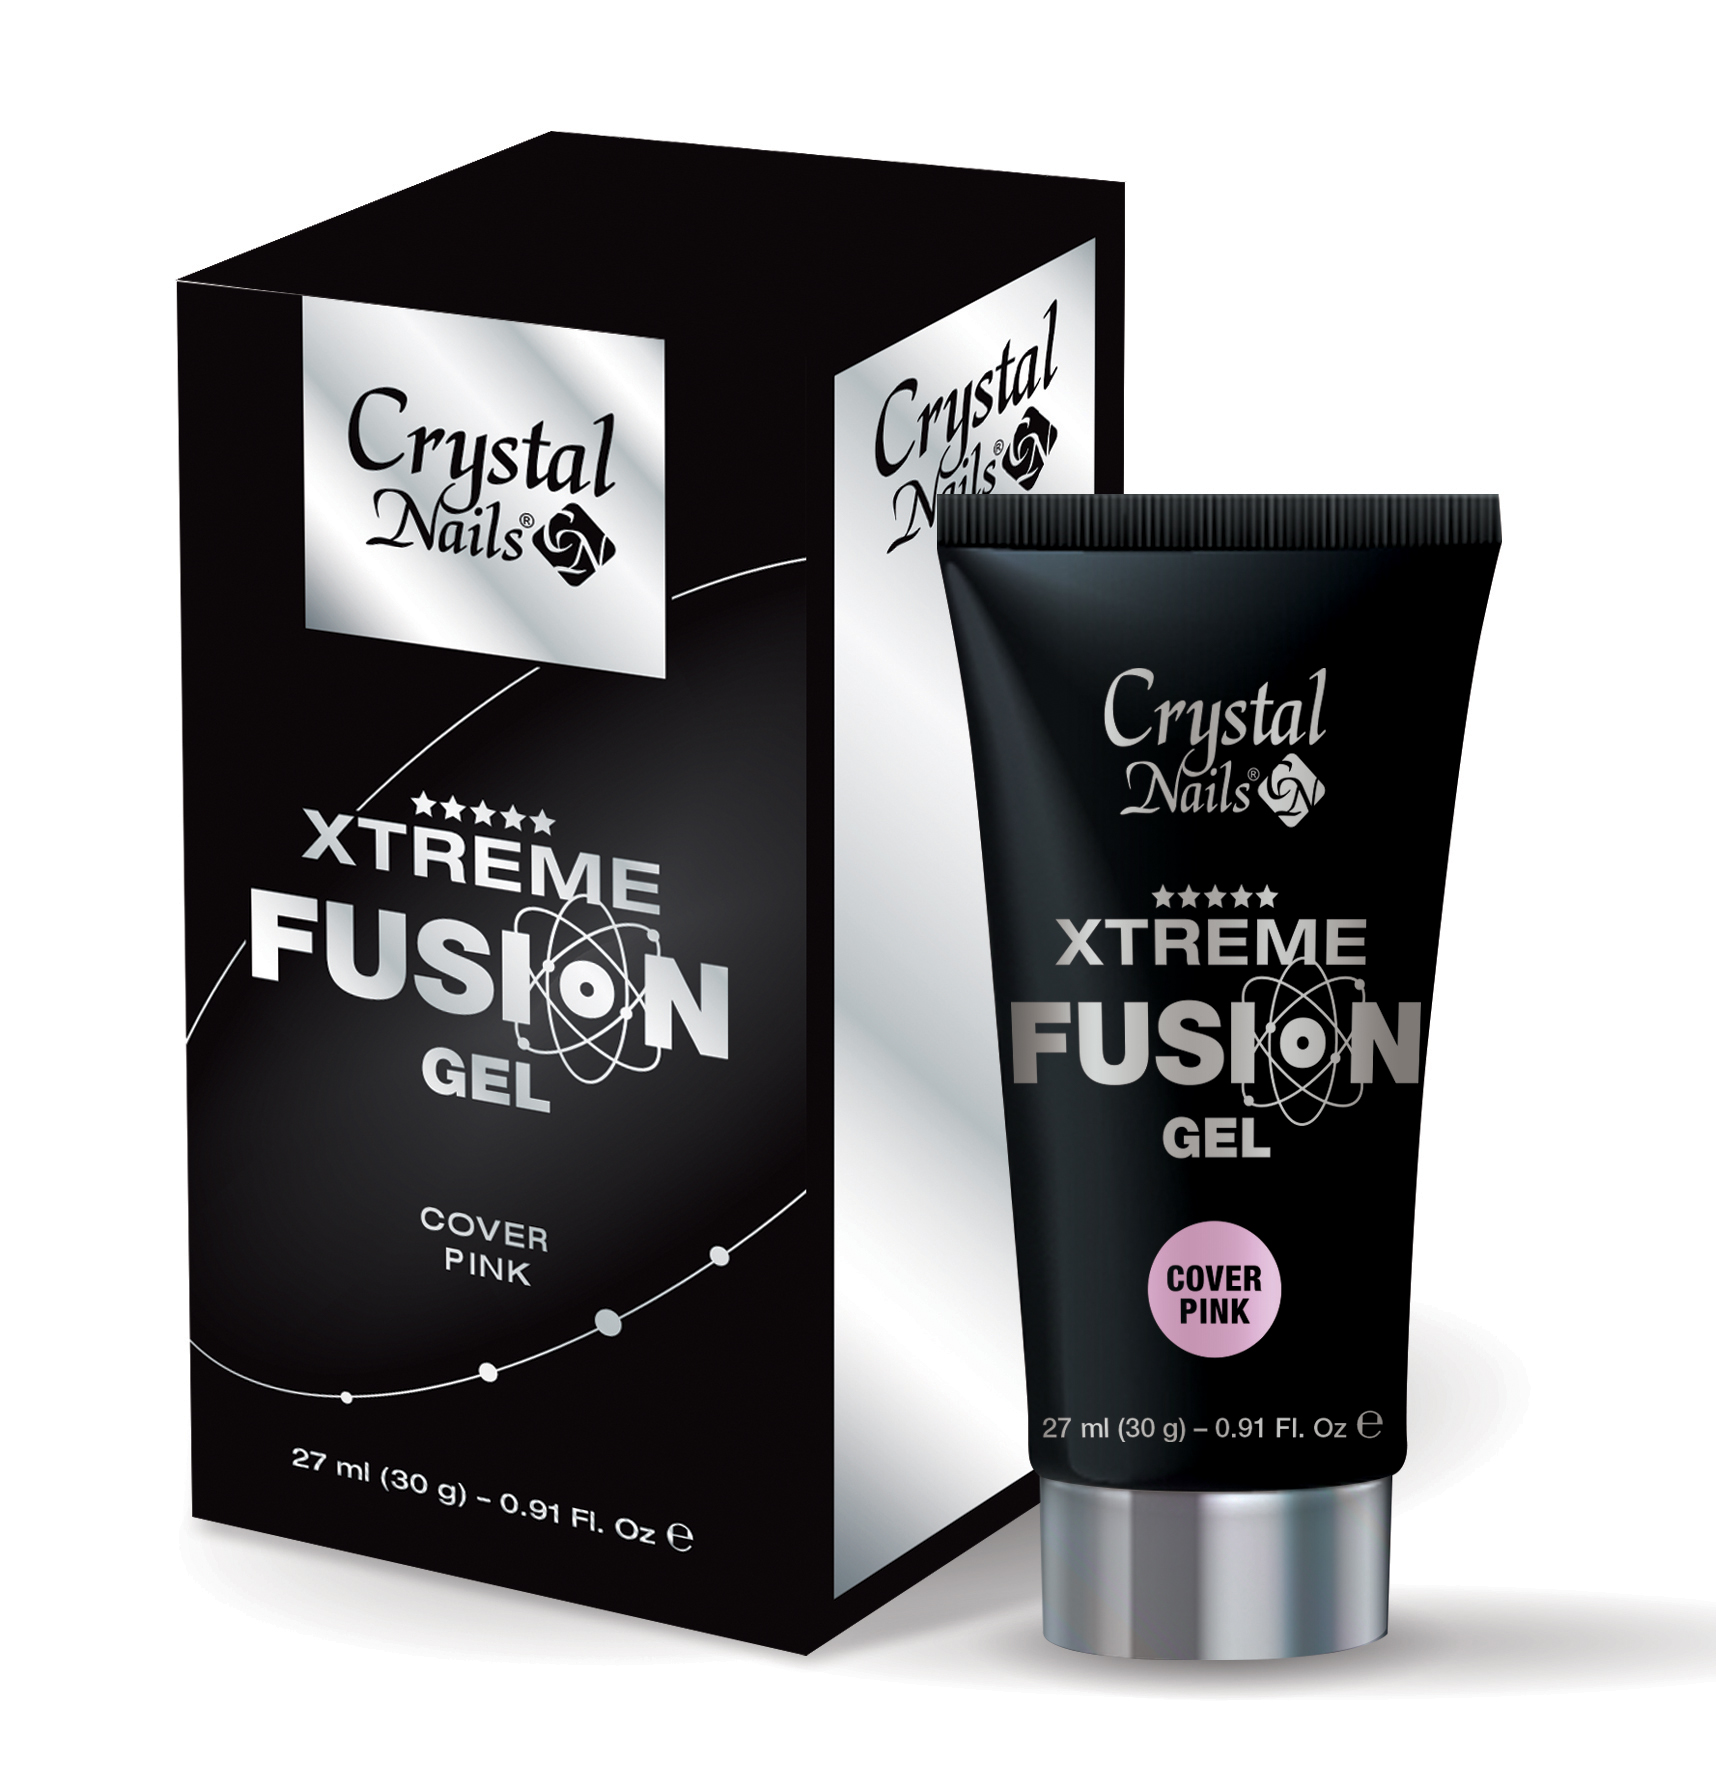 Xtreme Fusion Acrylgel Cover Pink 30G